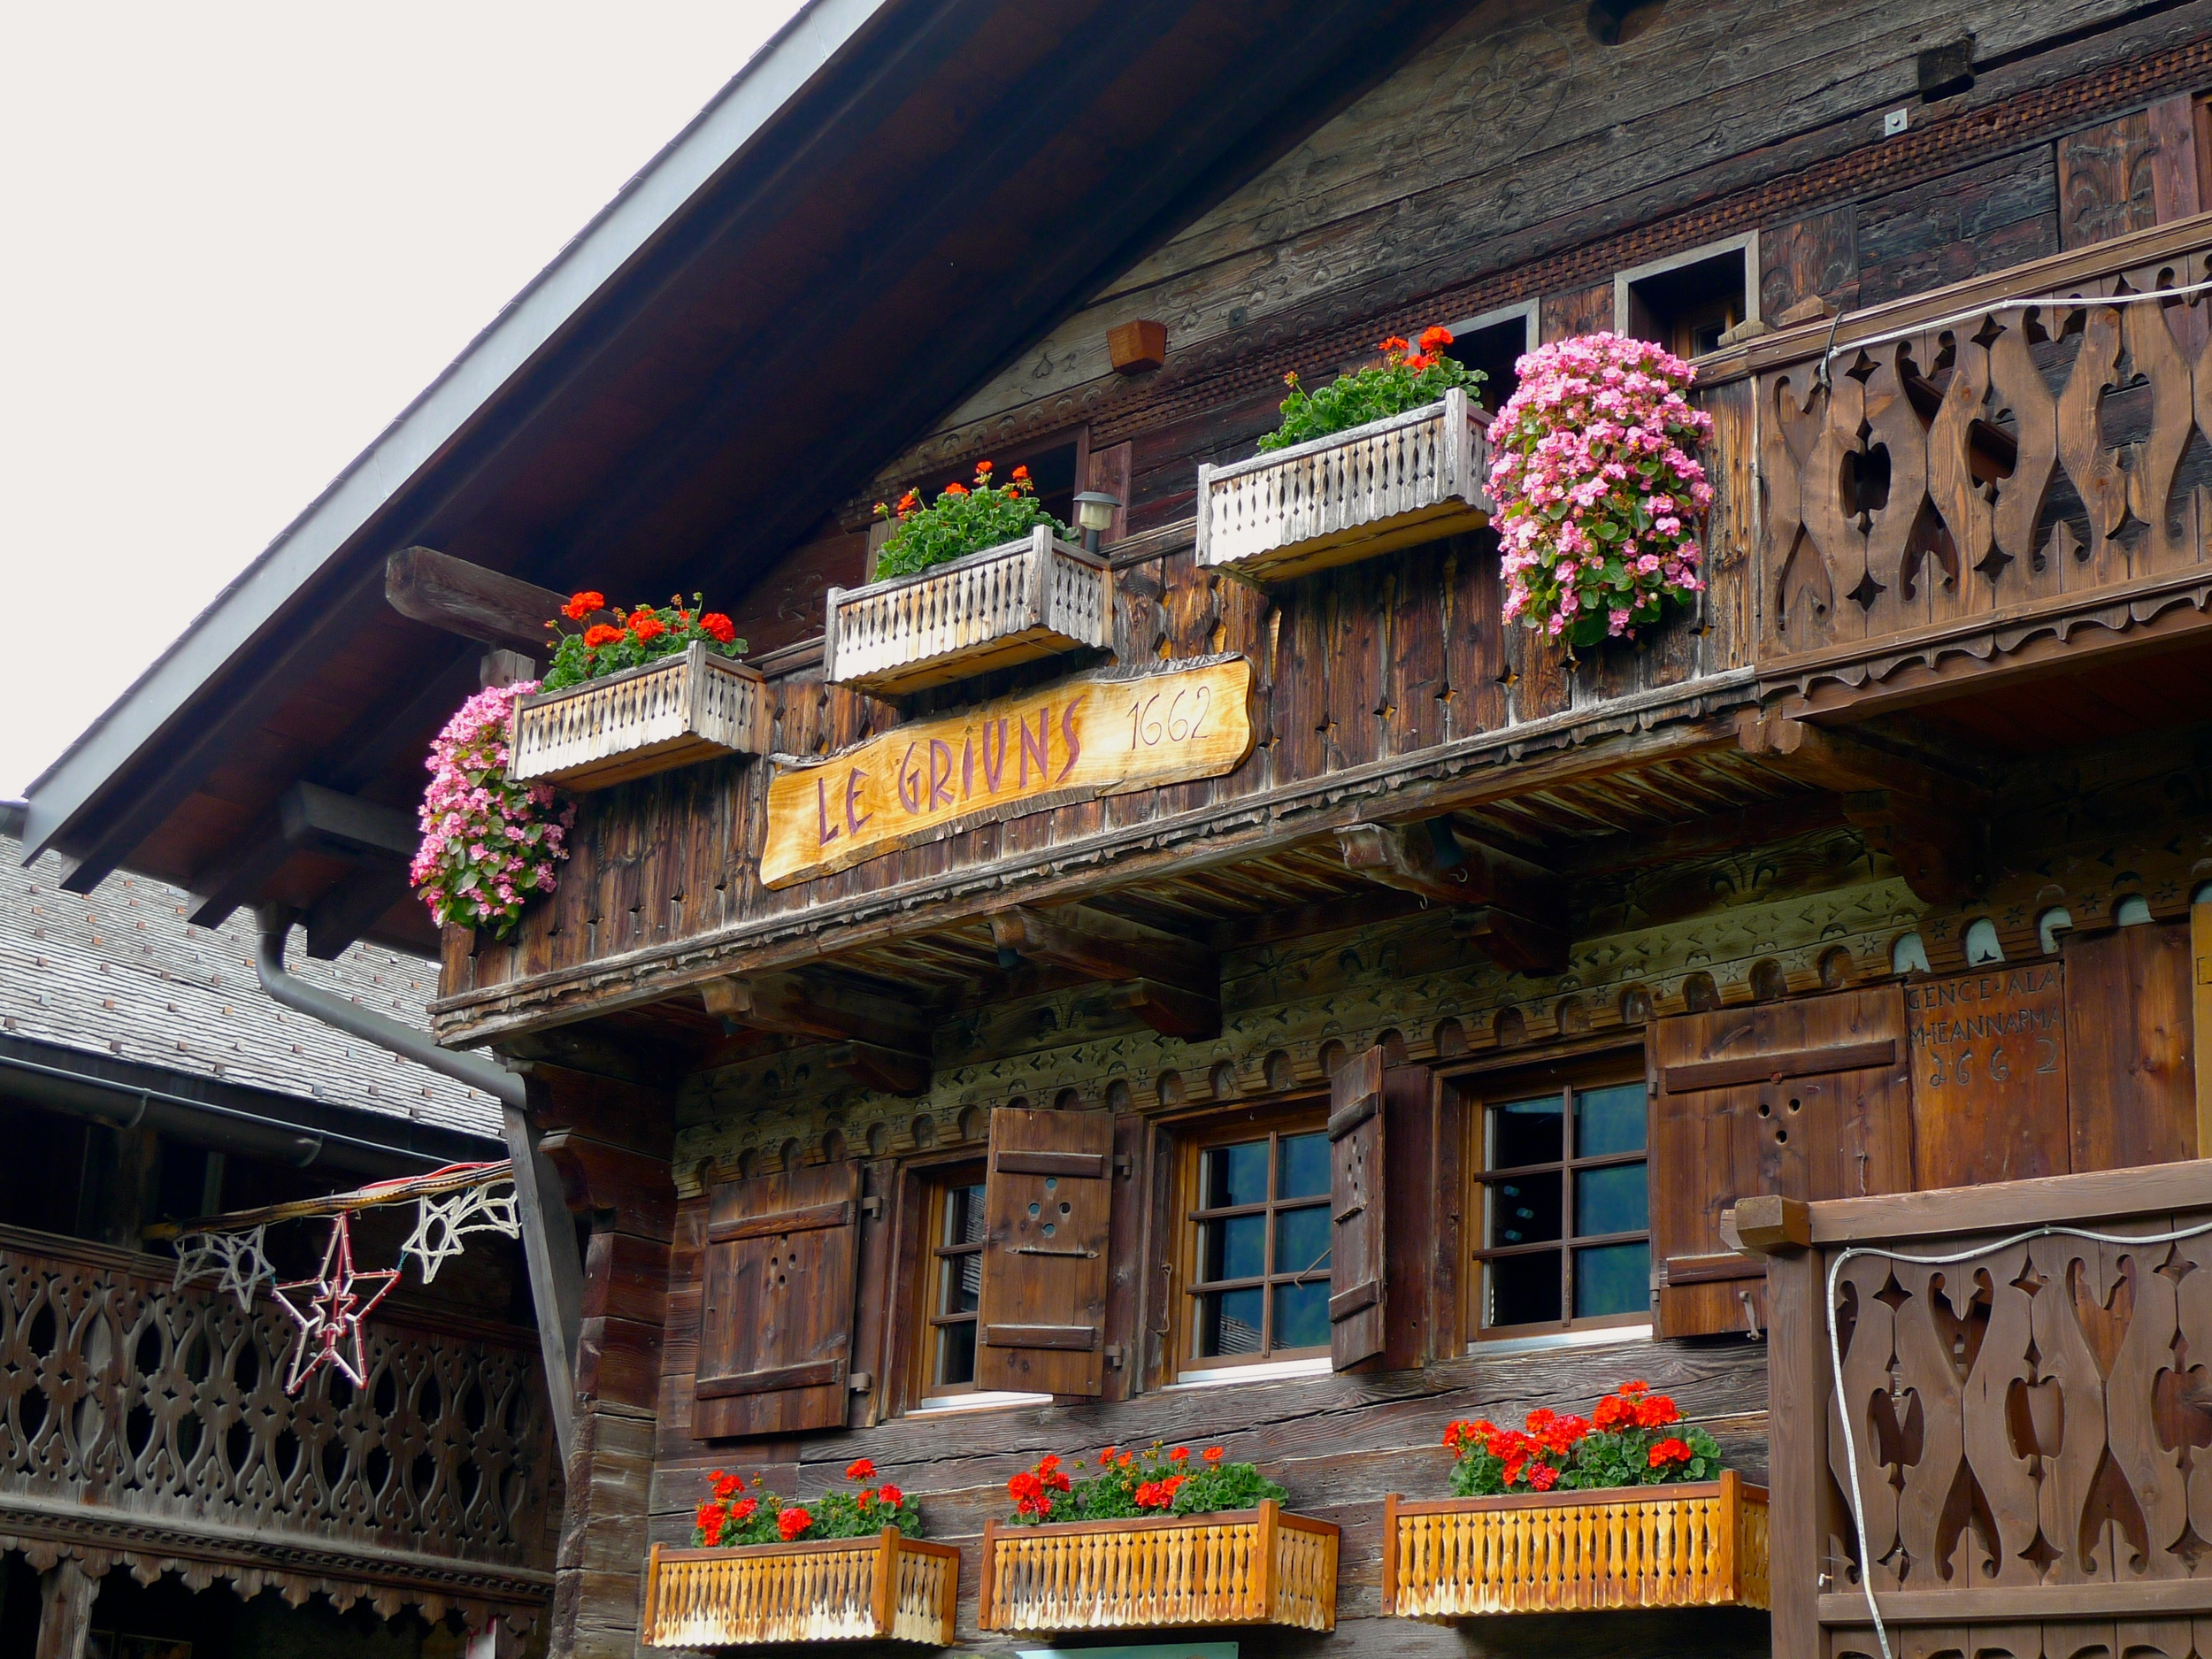 One of the oldest chalets around